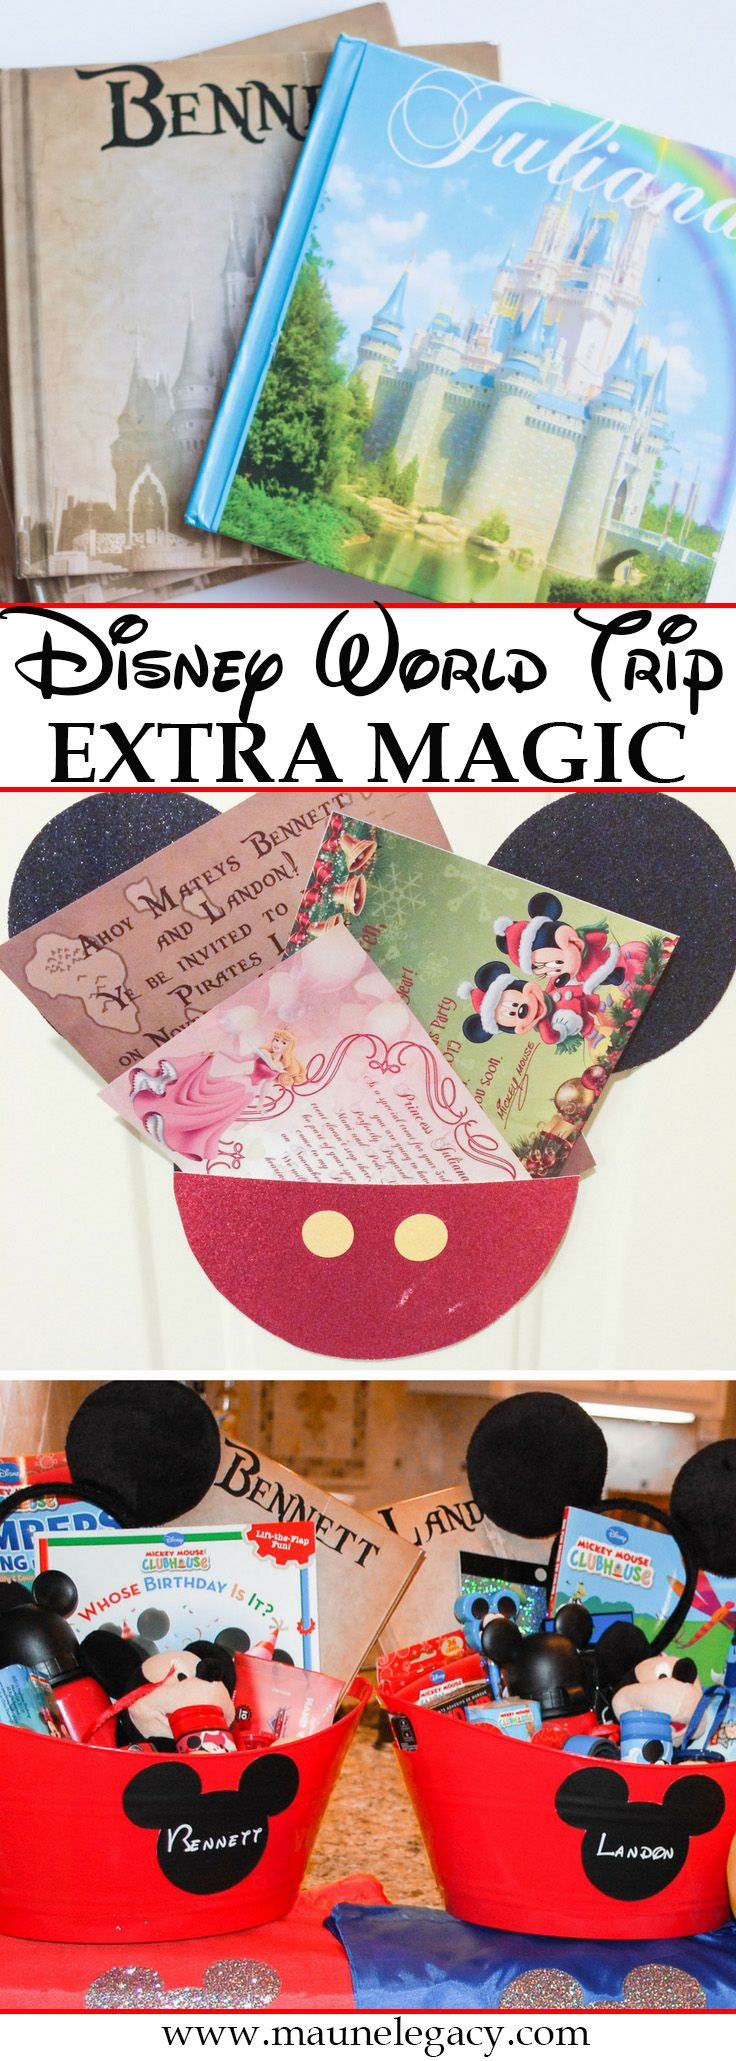 Lifestyle Blogger Maune Legacy shares ideas for the extra Disney World magic you can create for your trip like autograph books, gift baskets, pressed penny containers, luggage tags and more fun details for your next Disney World trip.